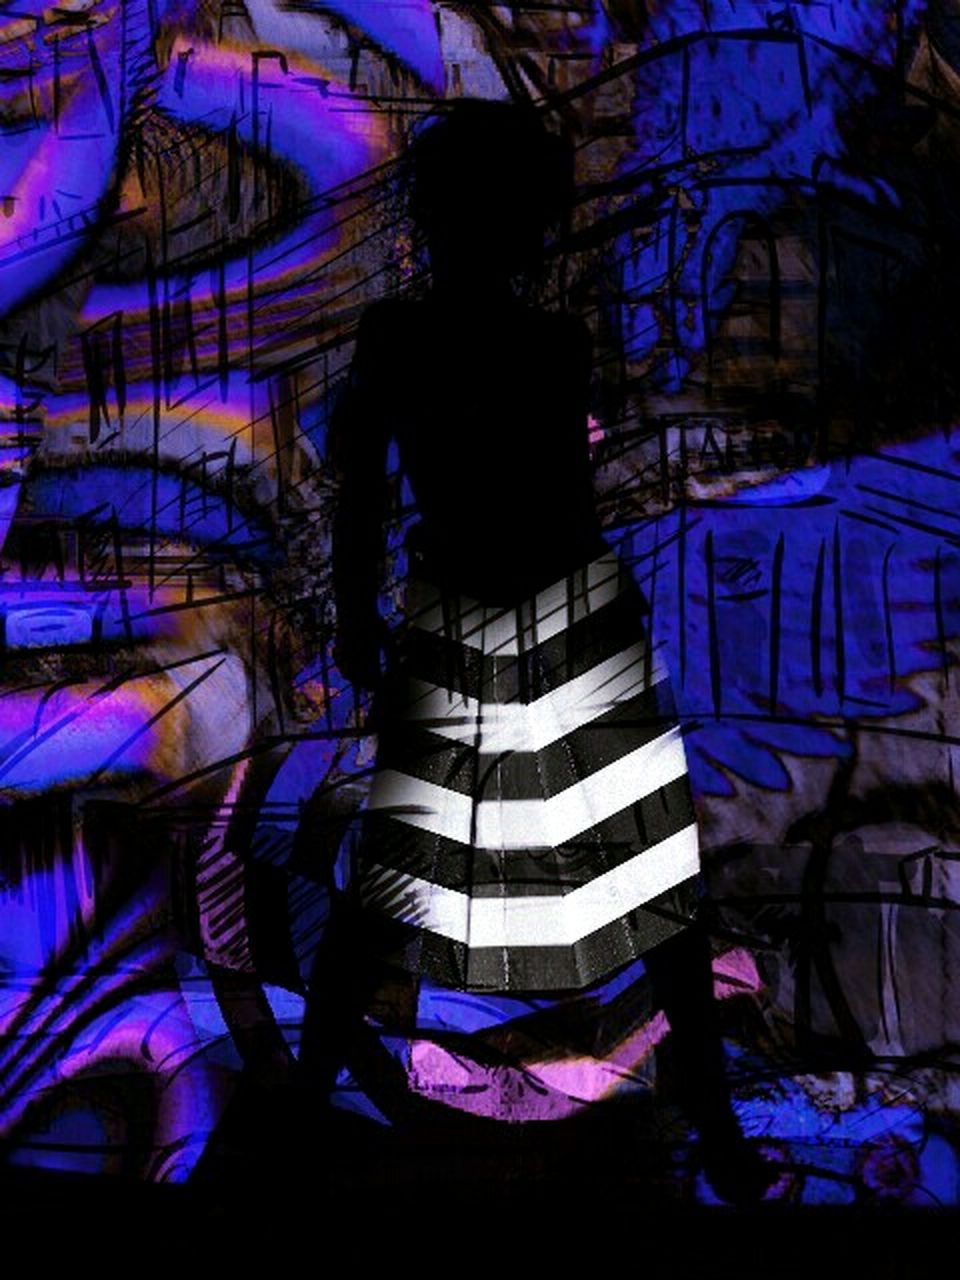 striped, one person, real people, night, full length, indoors, adult, people, adults only